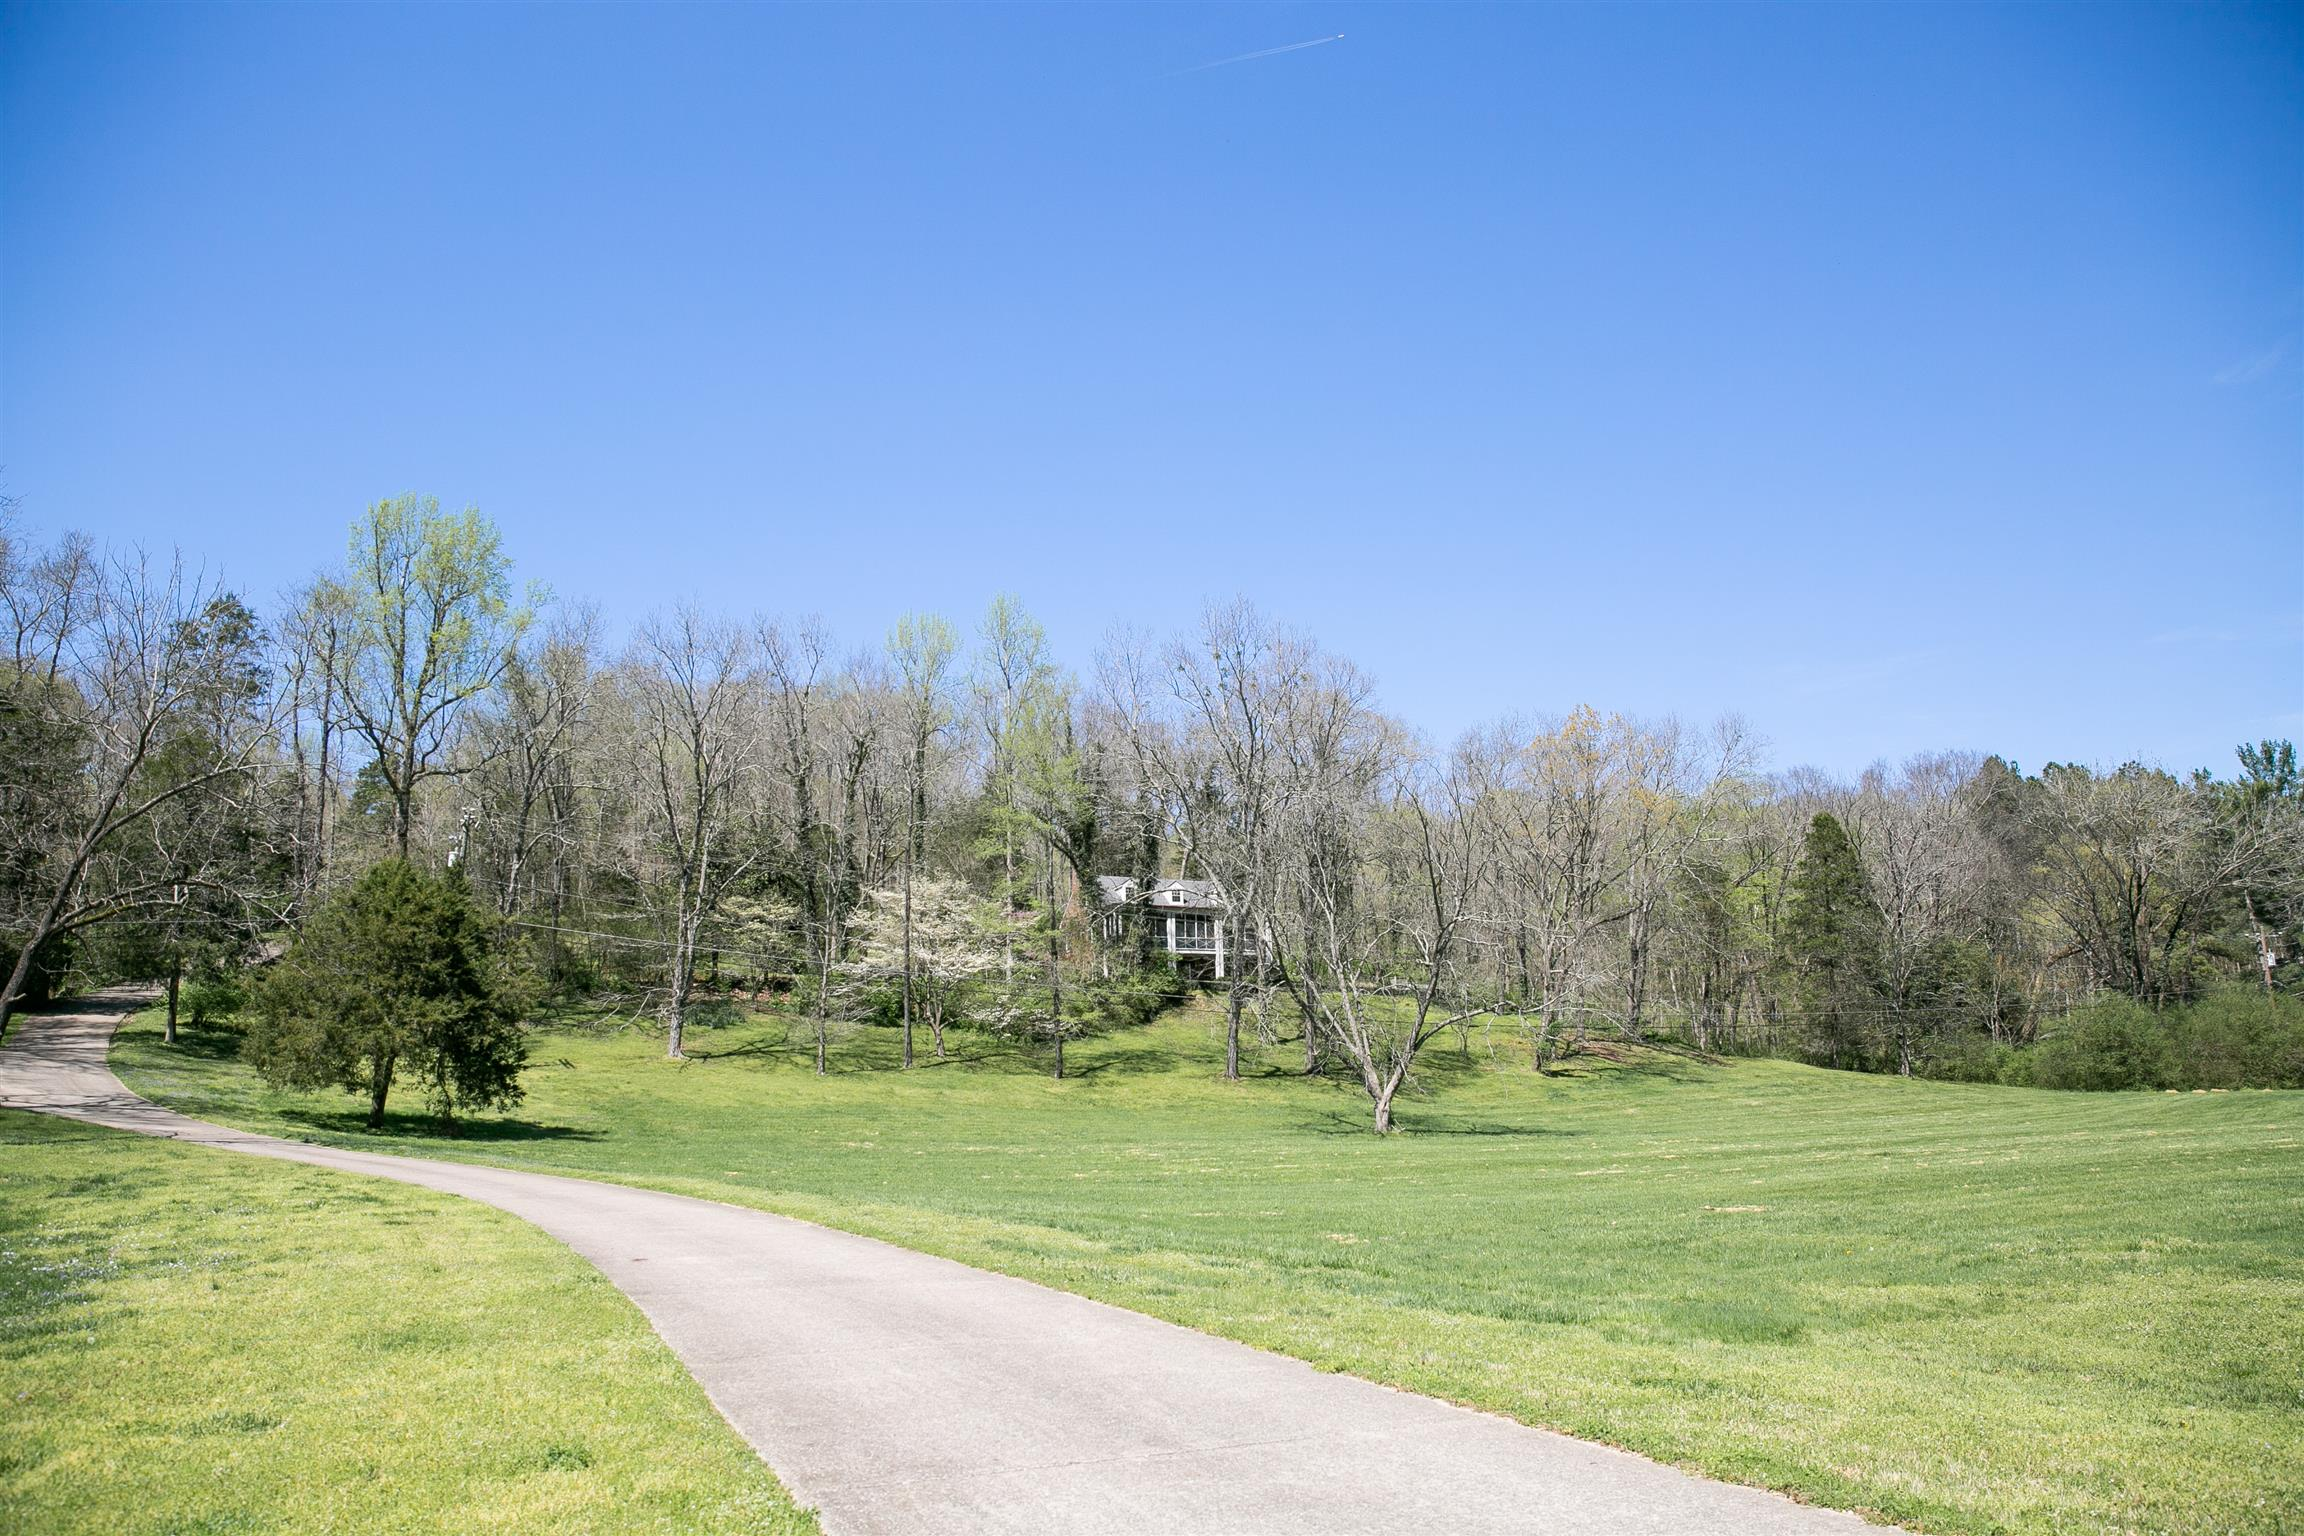 7606 Buffalo Rd, Nashville, TN 37221 - Nashville, TN real estate listing